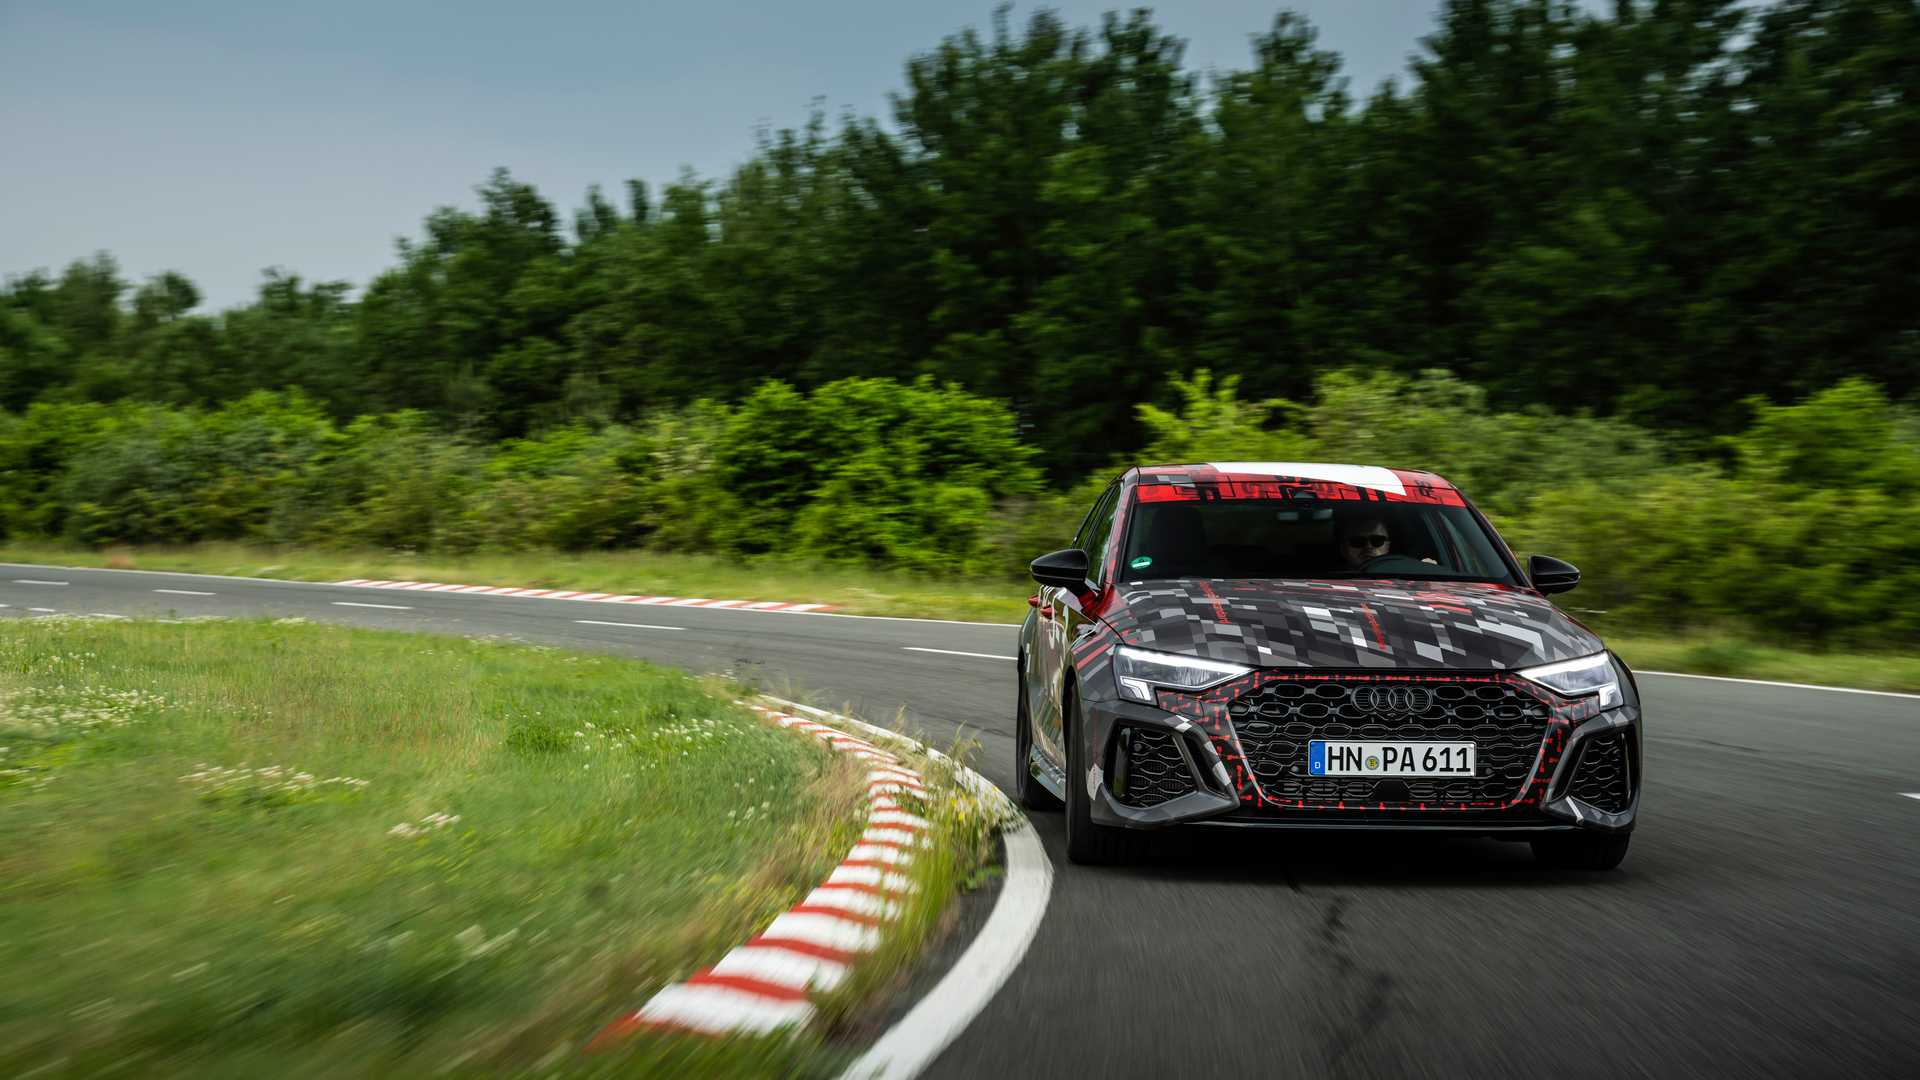 2022-audi-rs3-sportback-front-view-2